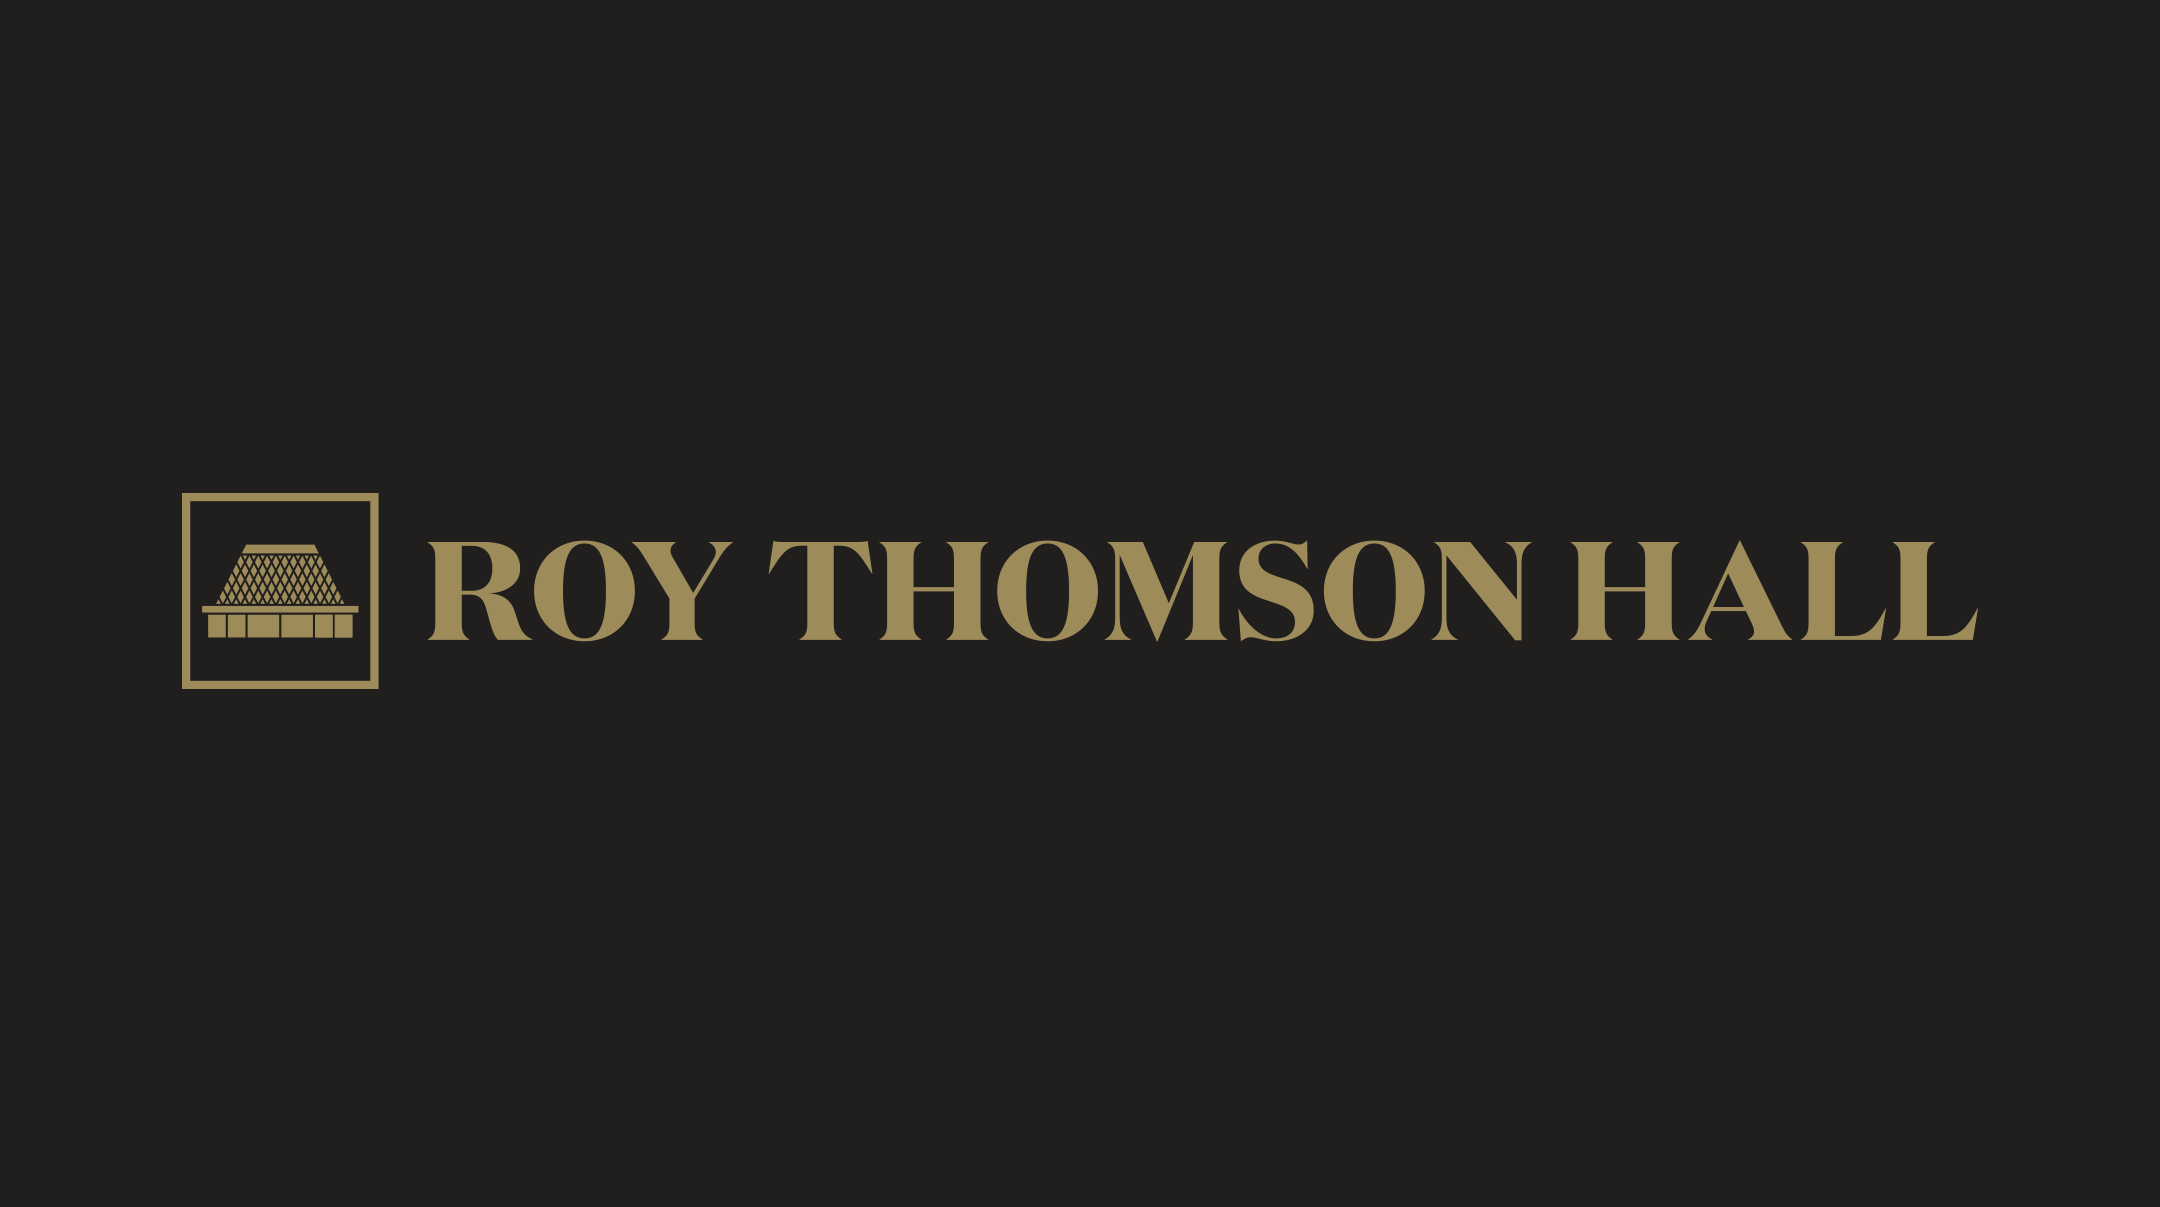 Roy Thomson Hall Wordmark